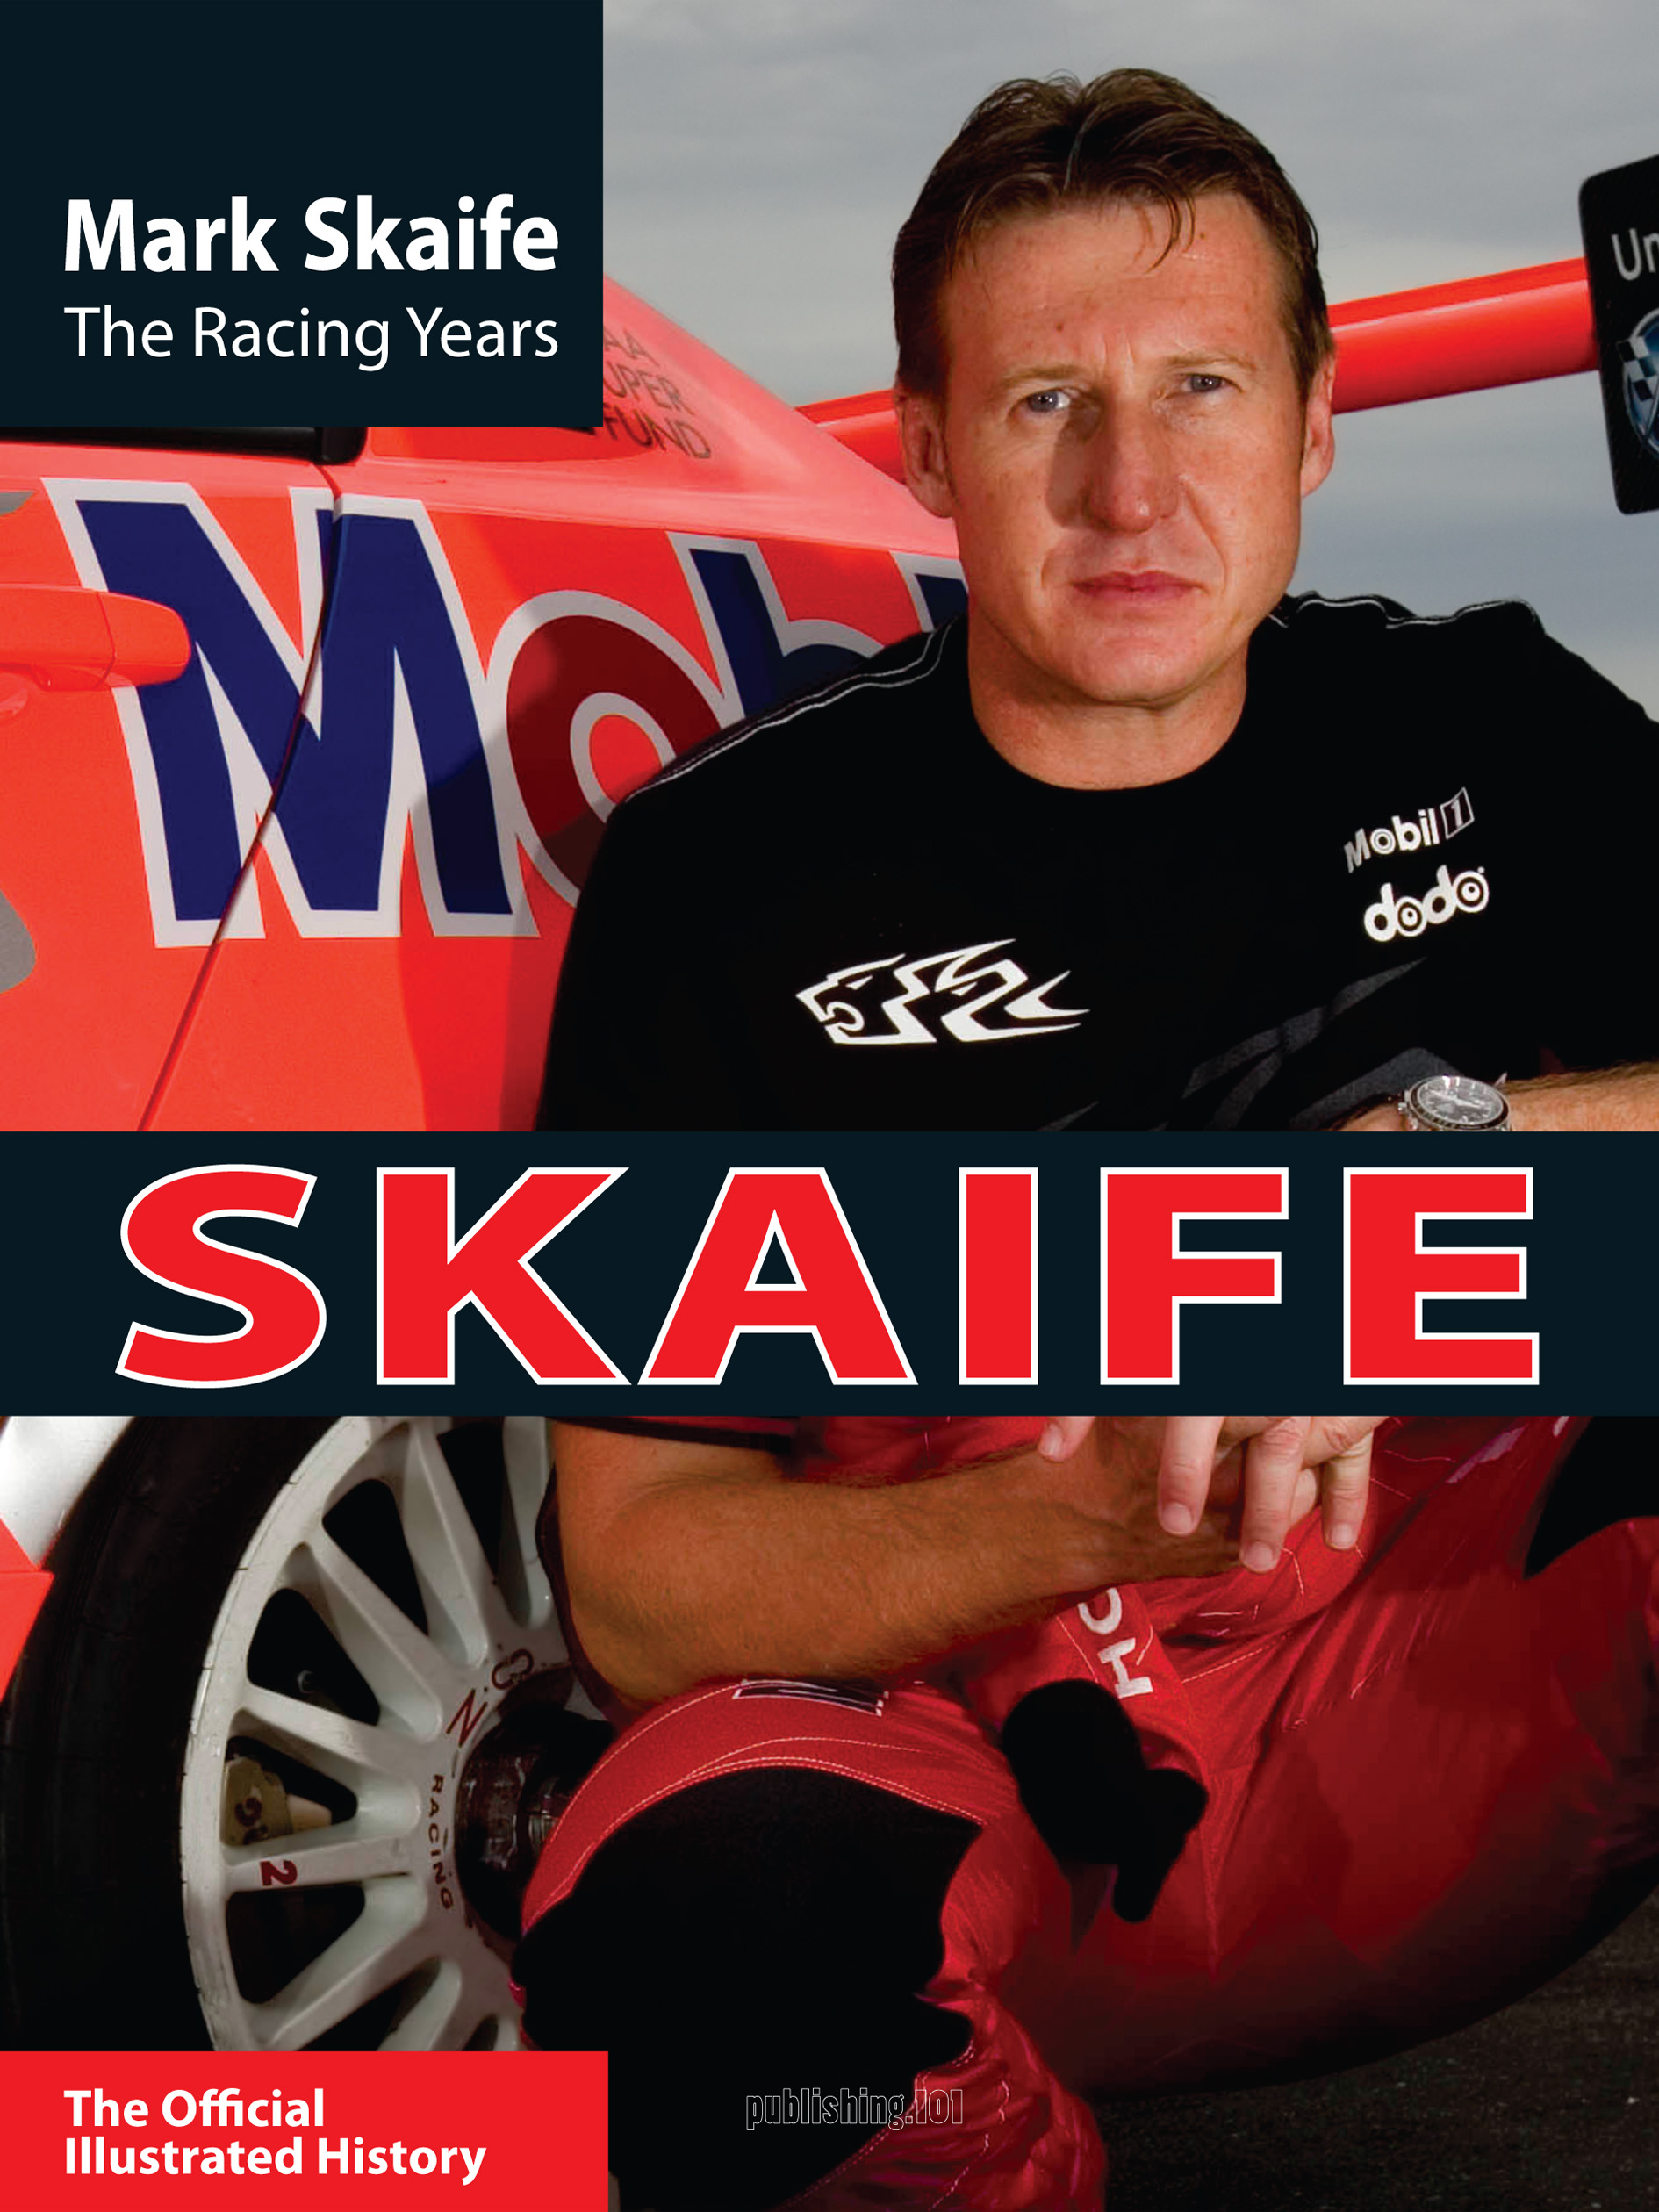 Mark Skaife: The Illustrated History